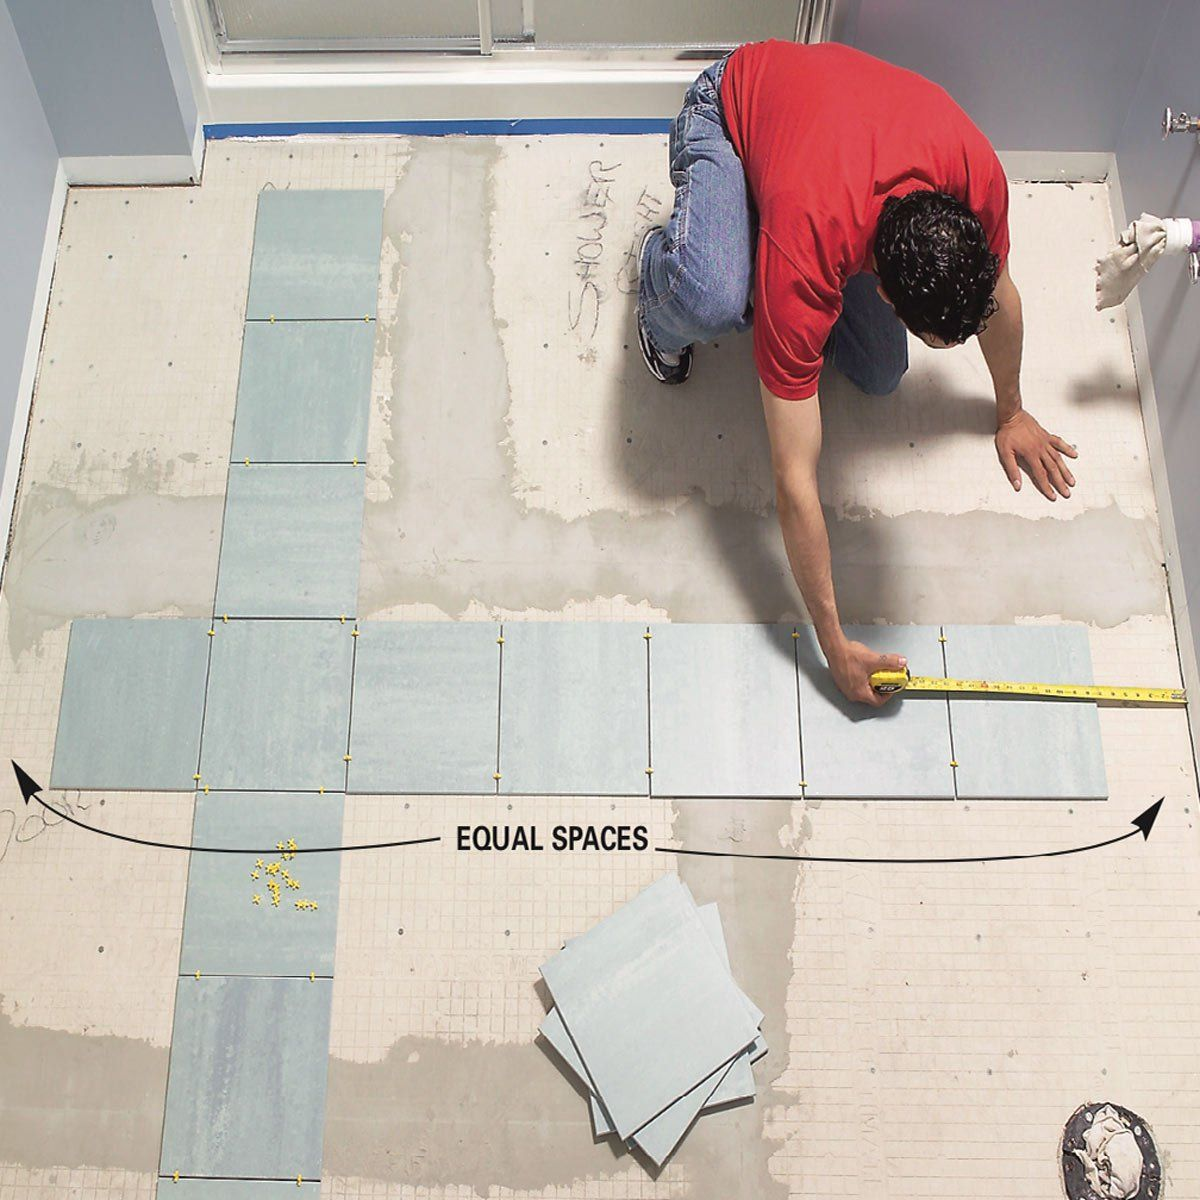 How to Lay Tile: Install a Ceramic Tile Floor In the Bathroom | The Family Handyman | Tile floor, Installing tile floor, Ceramic floor tiles